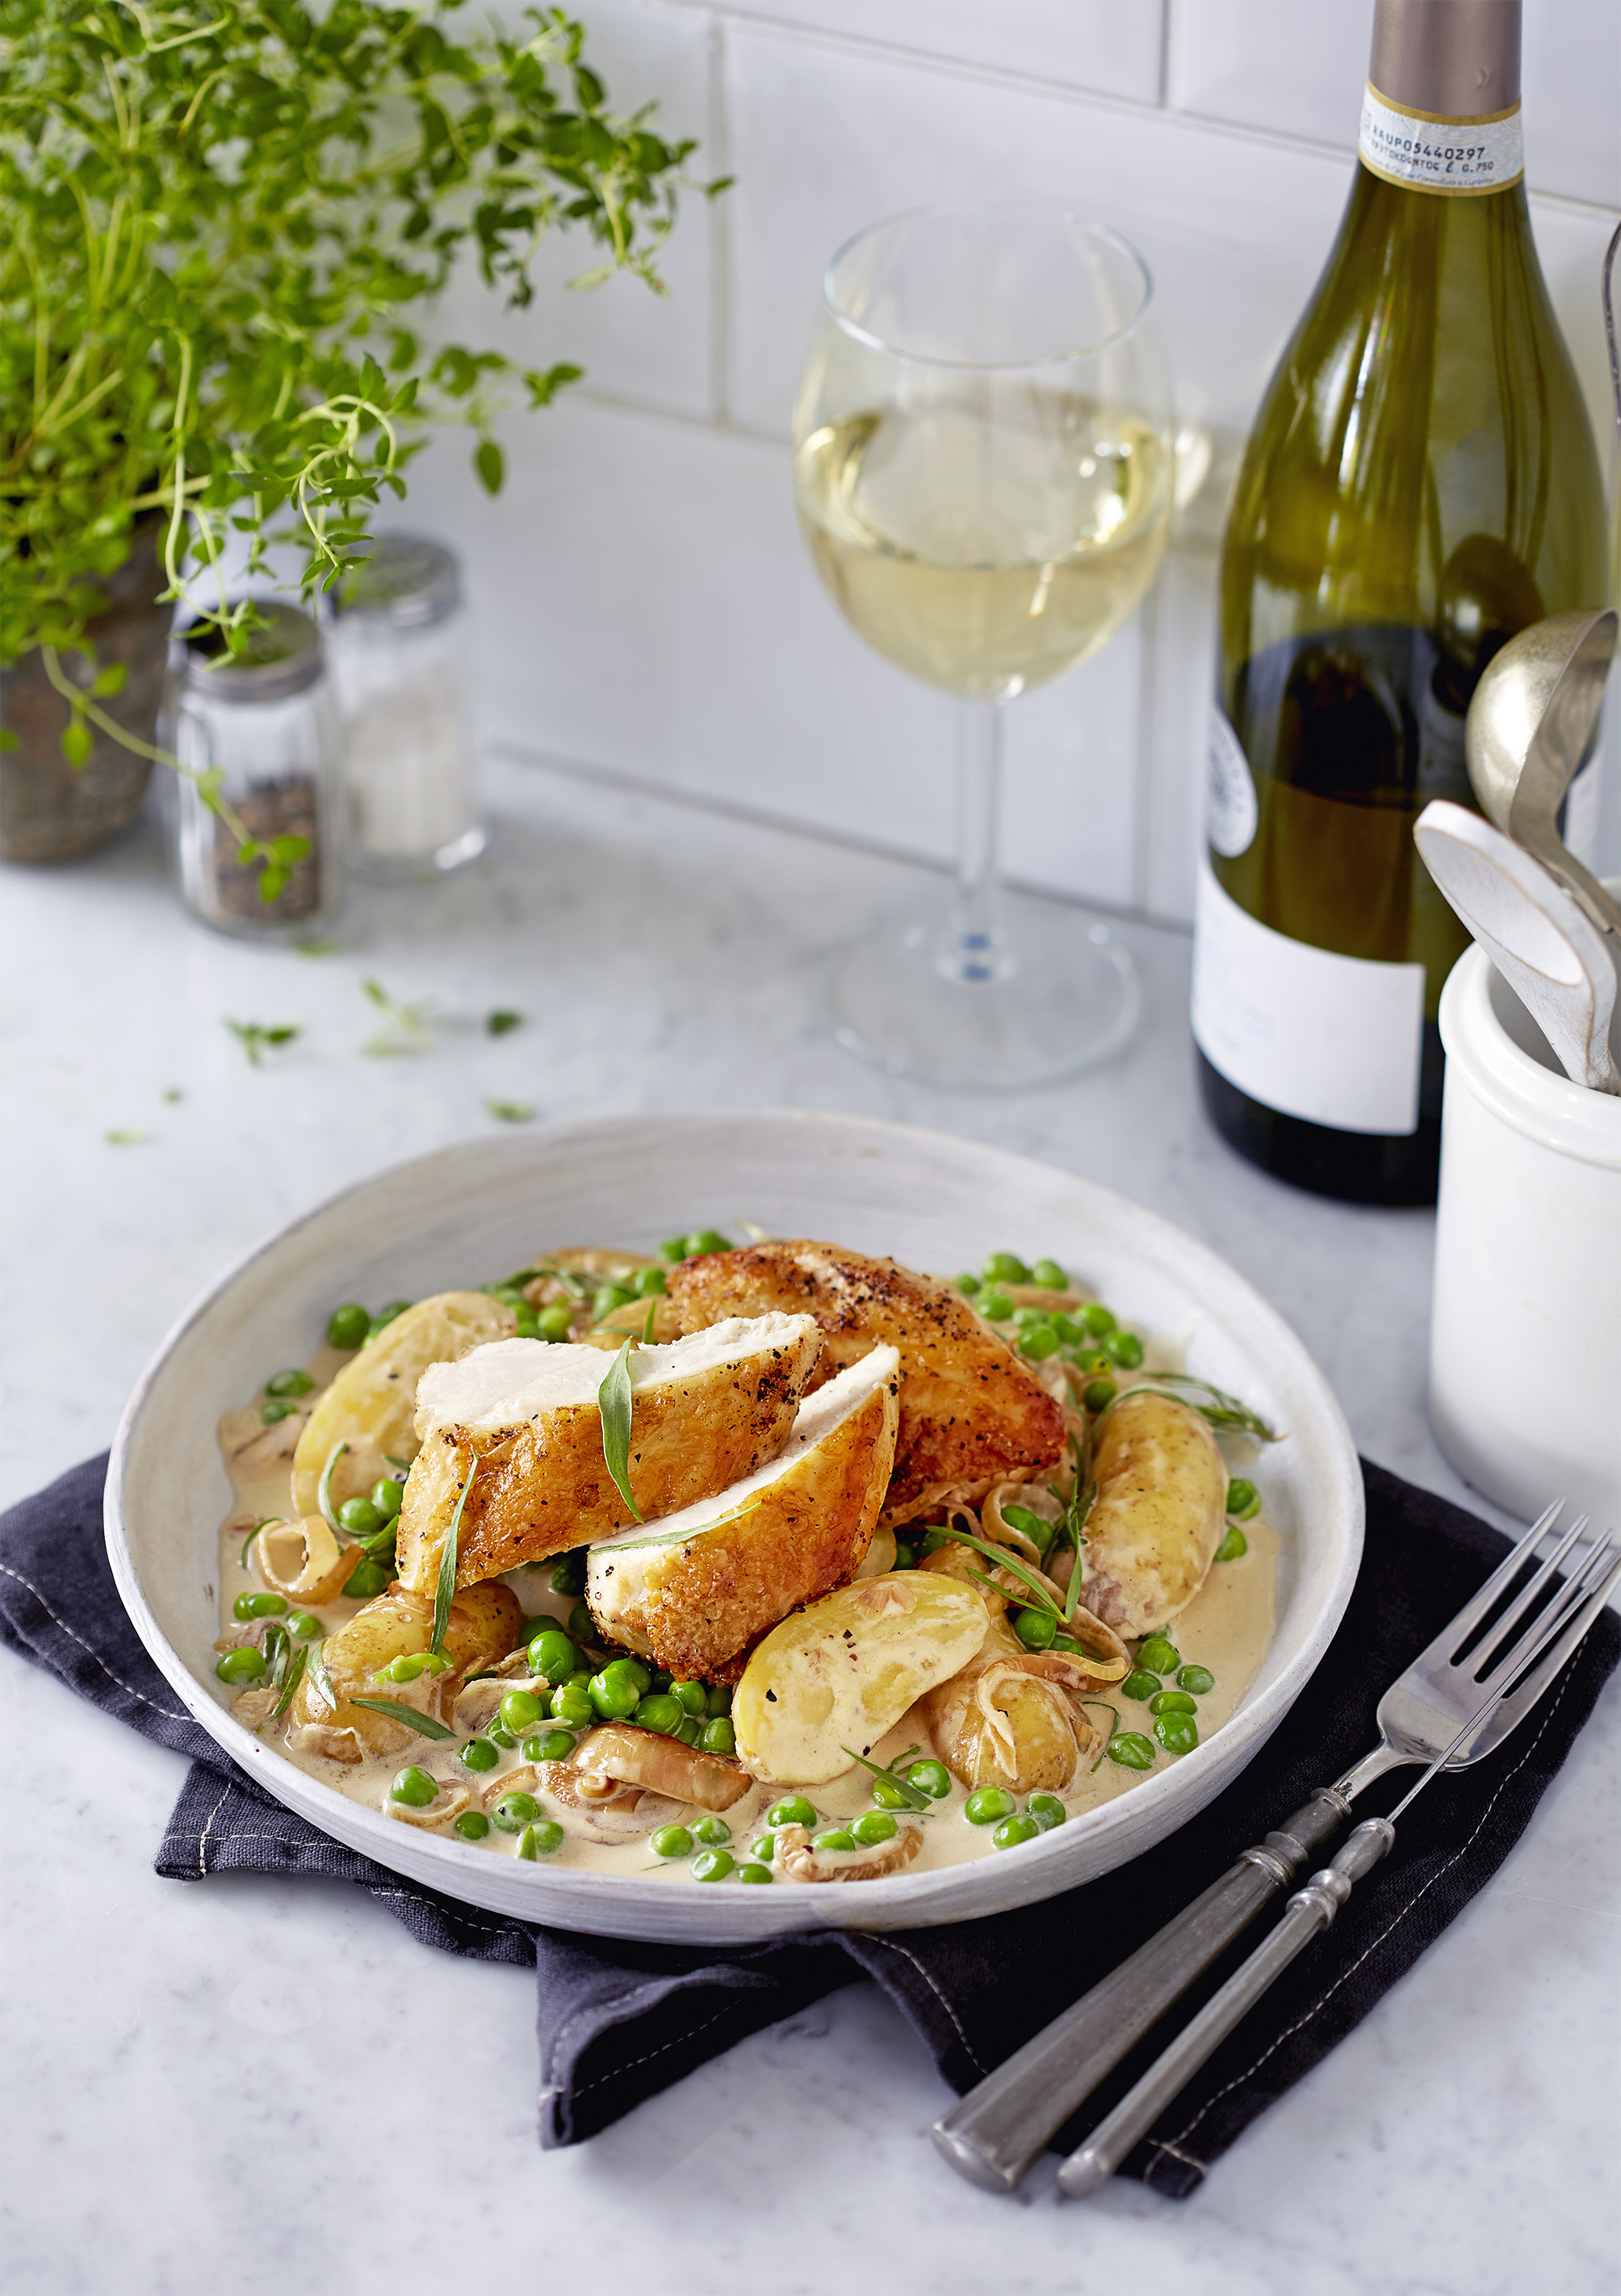 Pan fried chicken with peas and tarragon